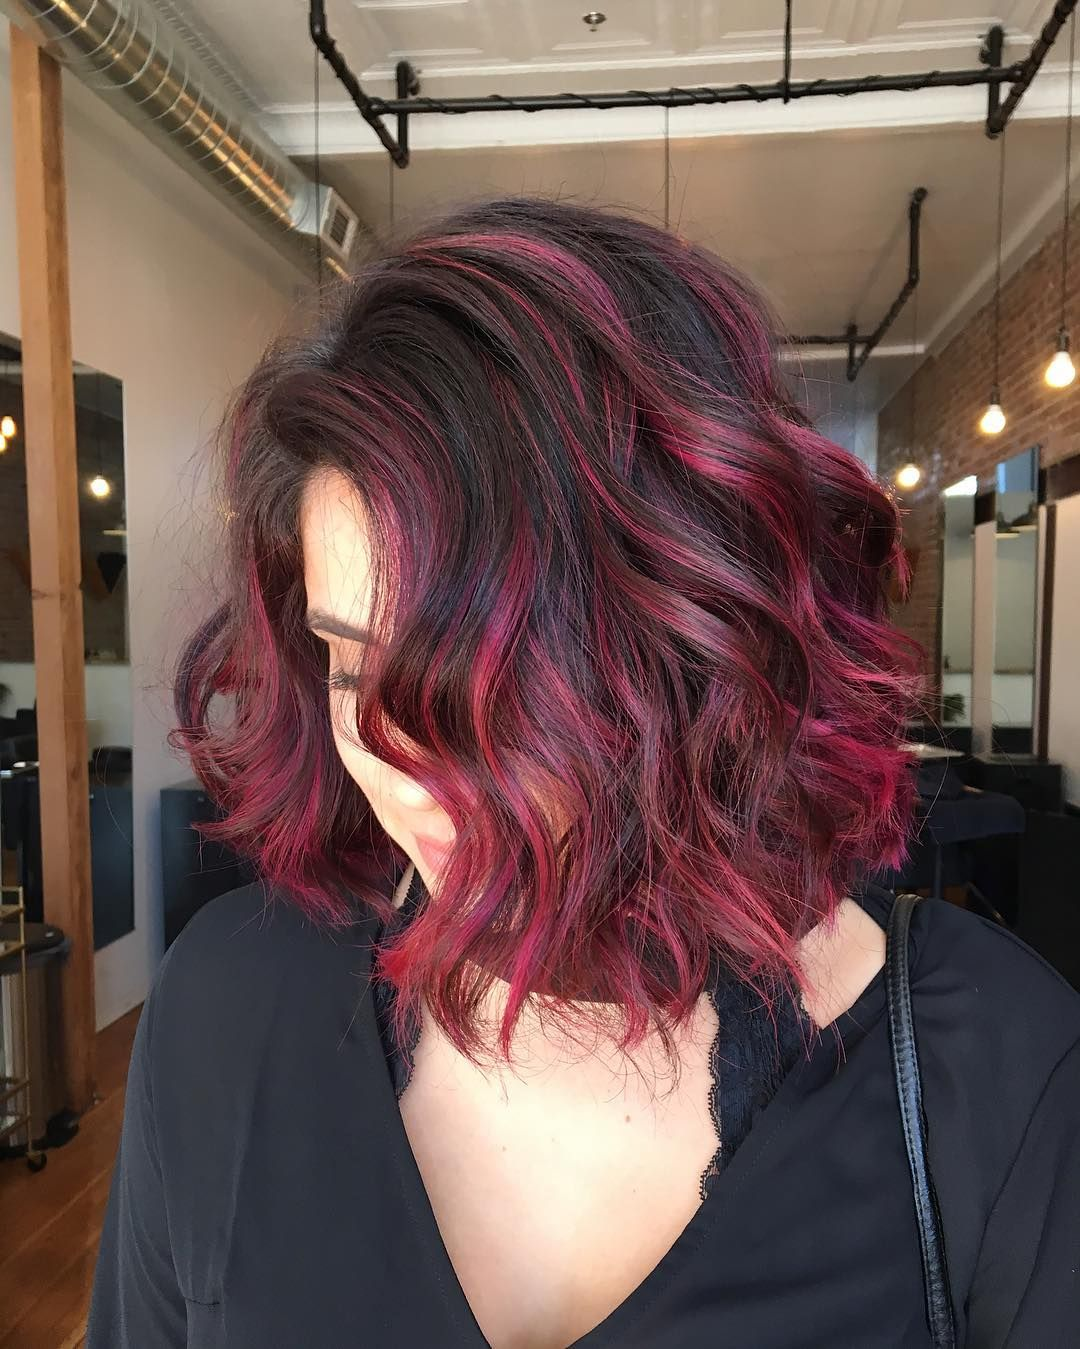 30 Blushing Burgundy Ombre Hair Ideas Ravishing In Red Check More At Http Hairstylezz Com Best Burgundy Ombre Hair Hair Styles Red Ombre Hair Burgundy Hair